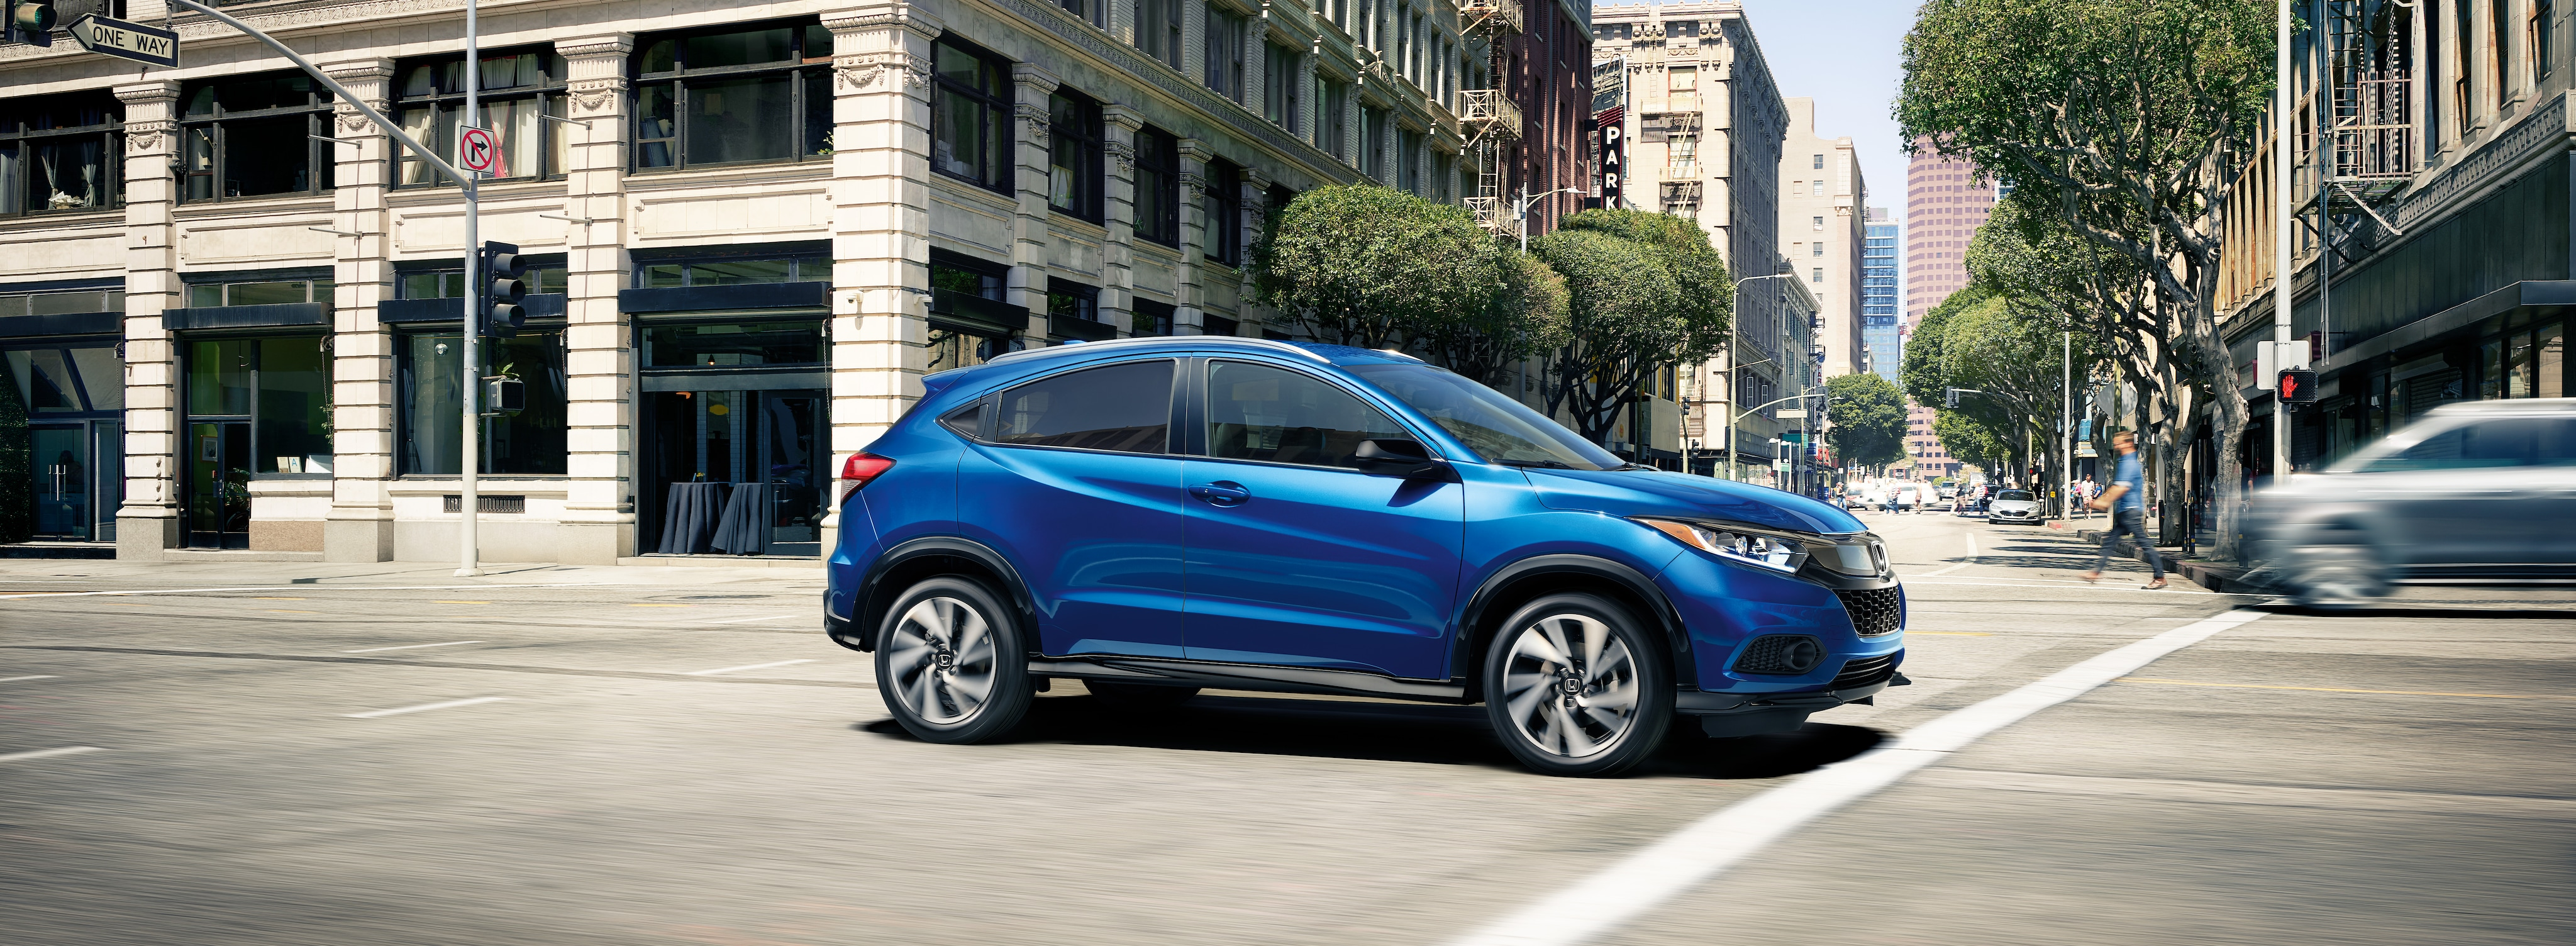 blue honda hr-v SUV